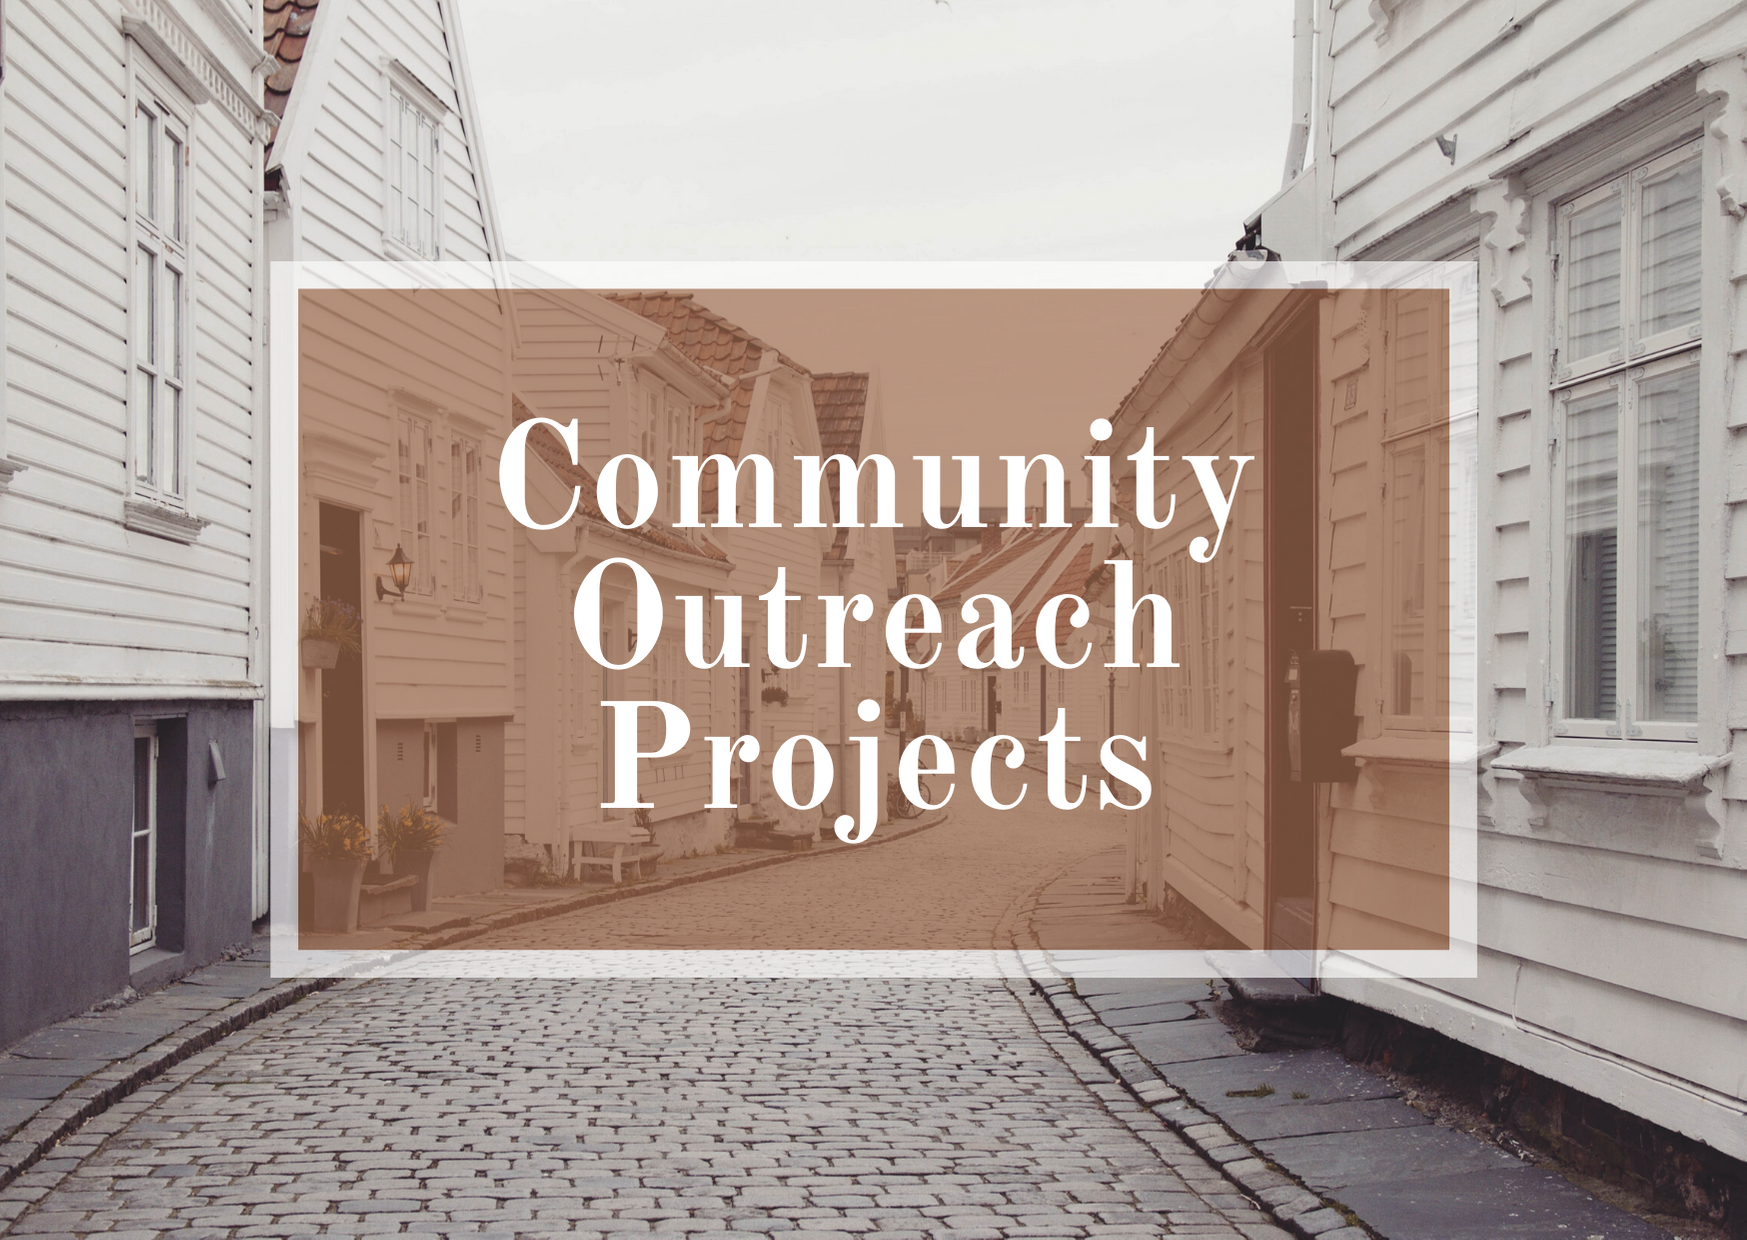 Community Outreach Projects